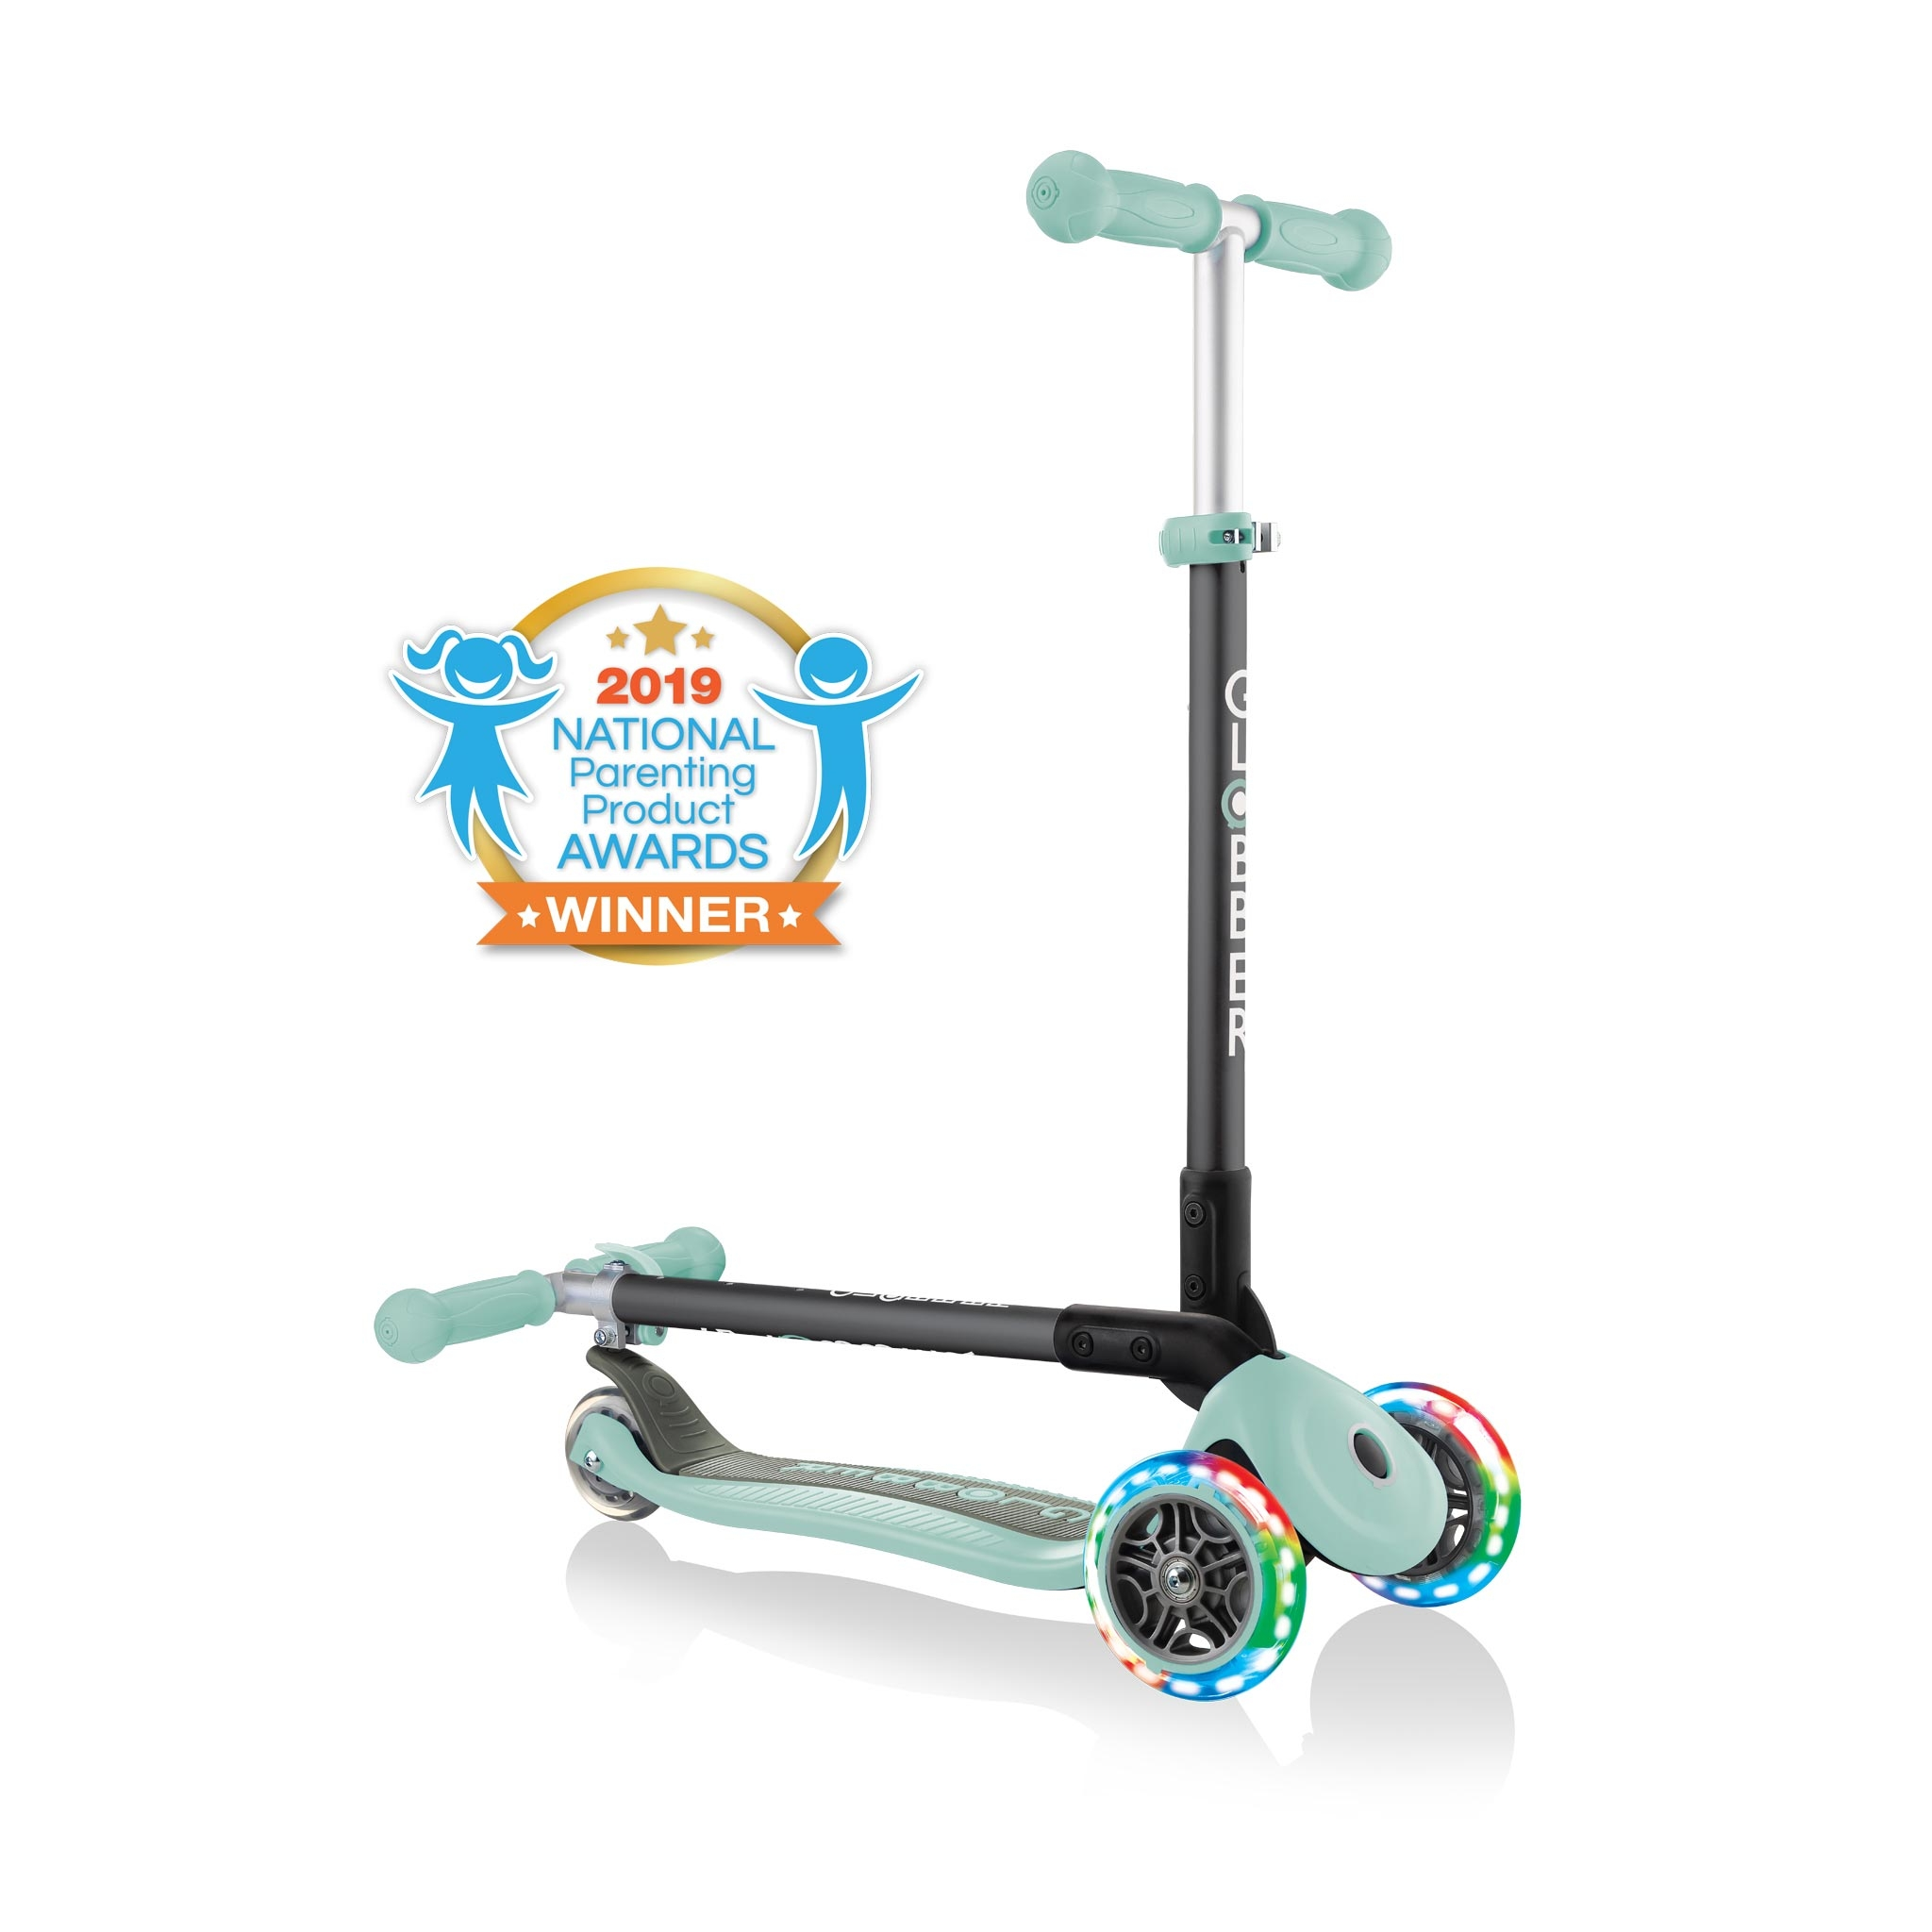 PRIMO-FOLDABLE-LIGHTS-3-wheel-fold-up-scooter-for-kids 0